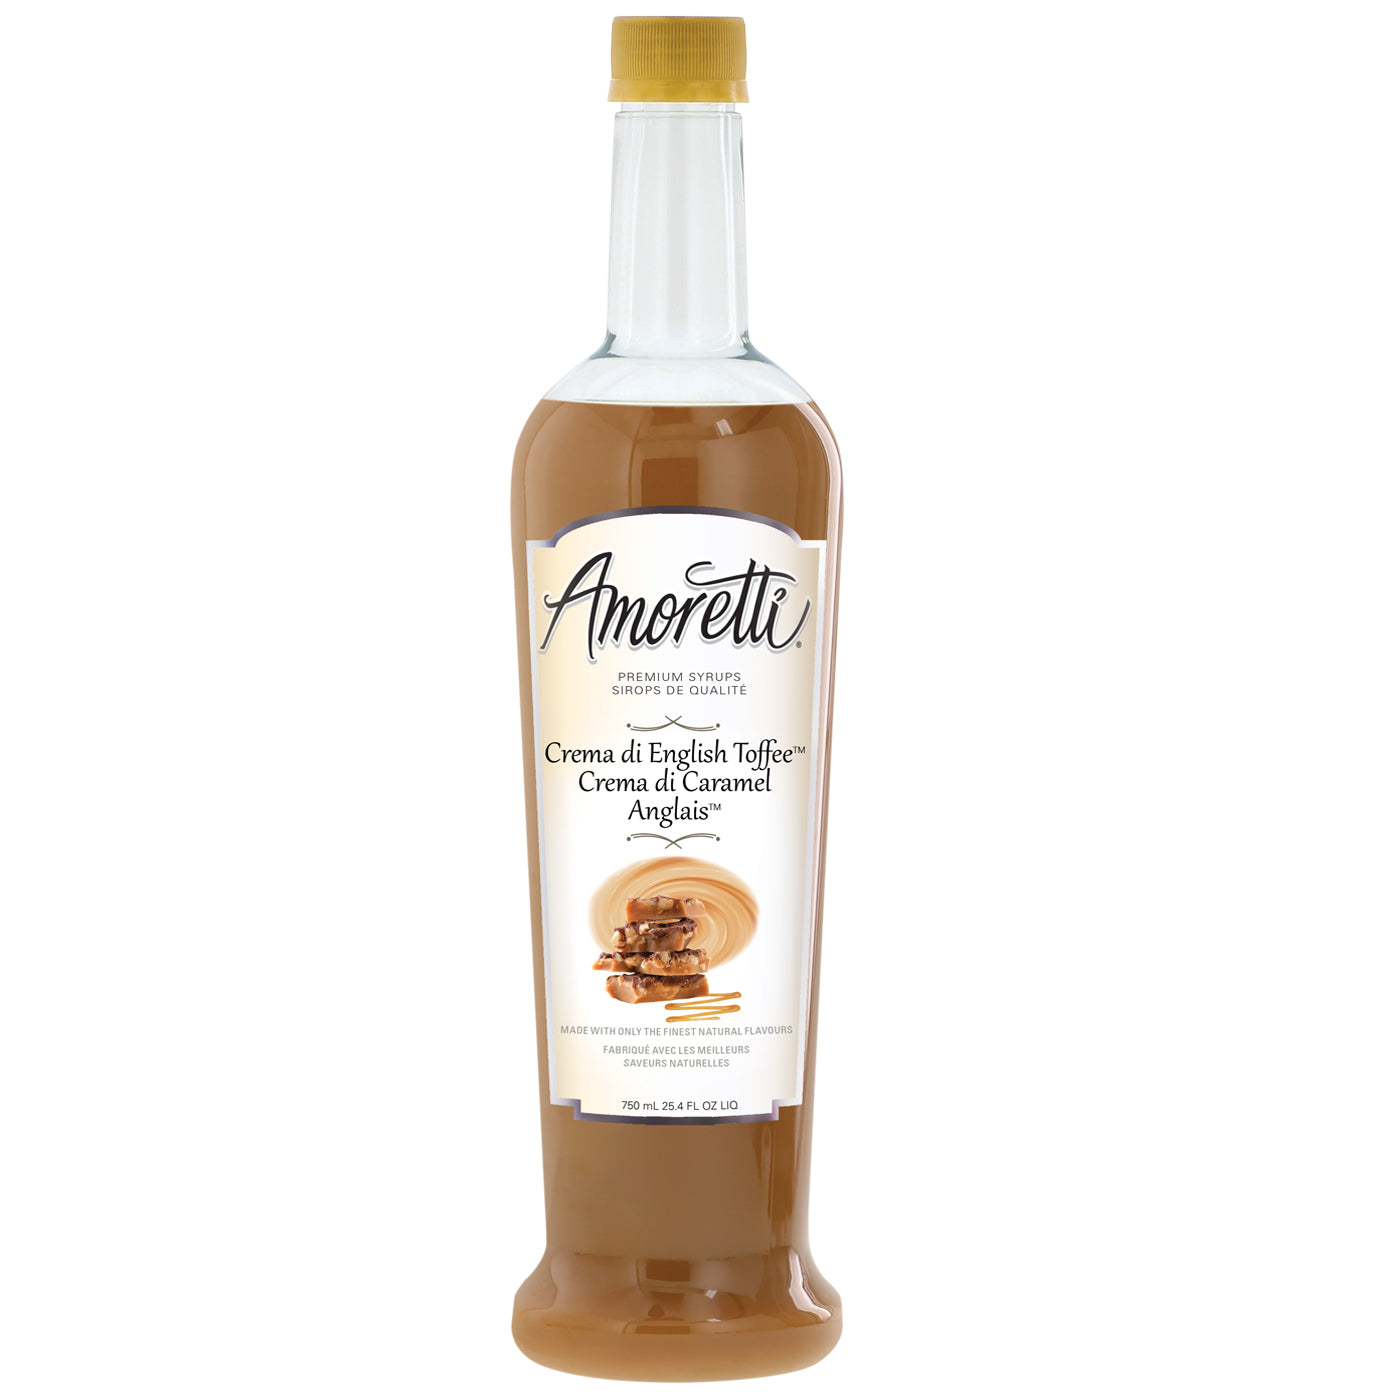 Amoretti Premium Crema Di English Toffee Syrup